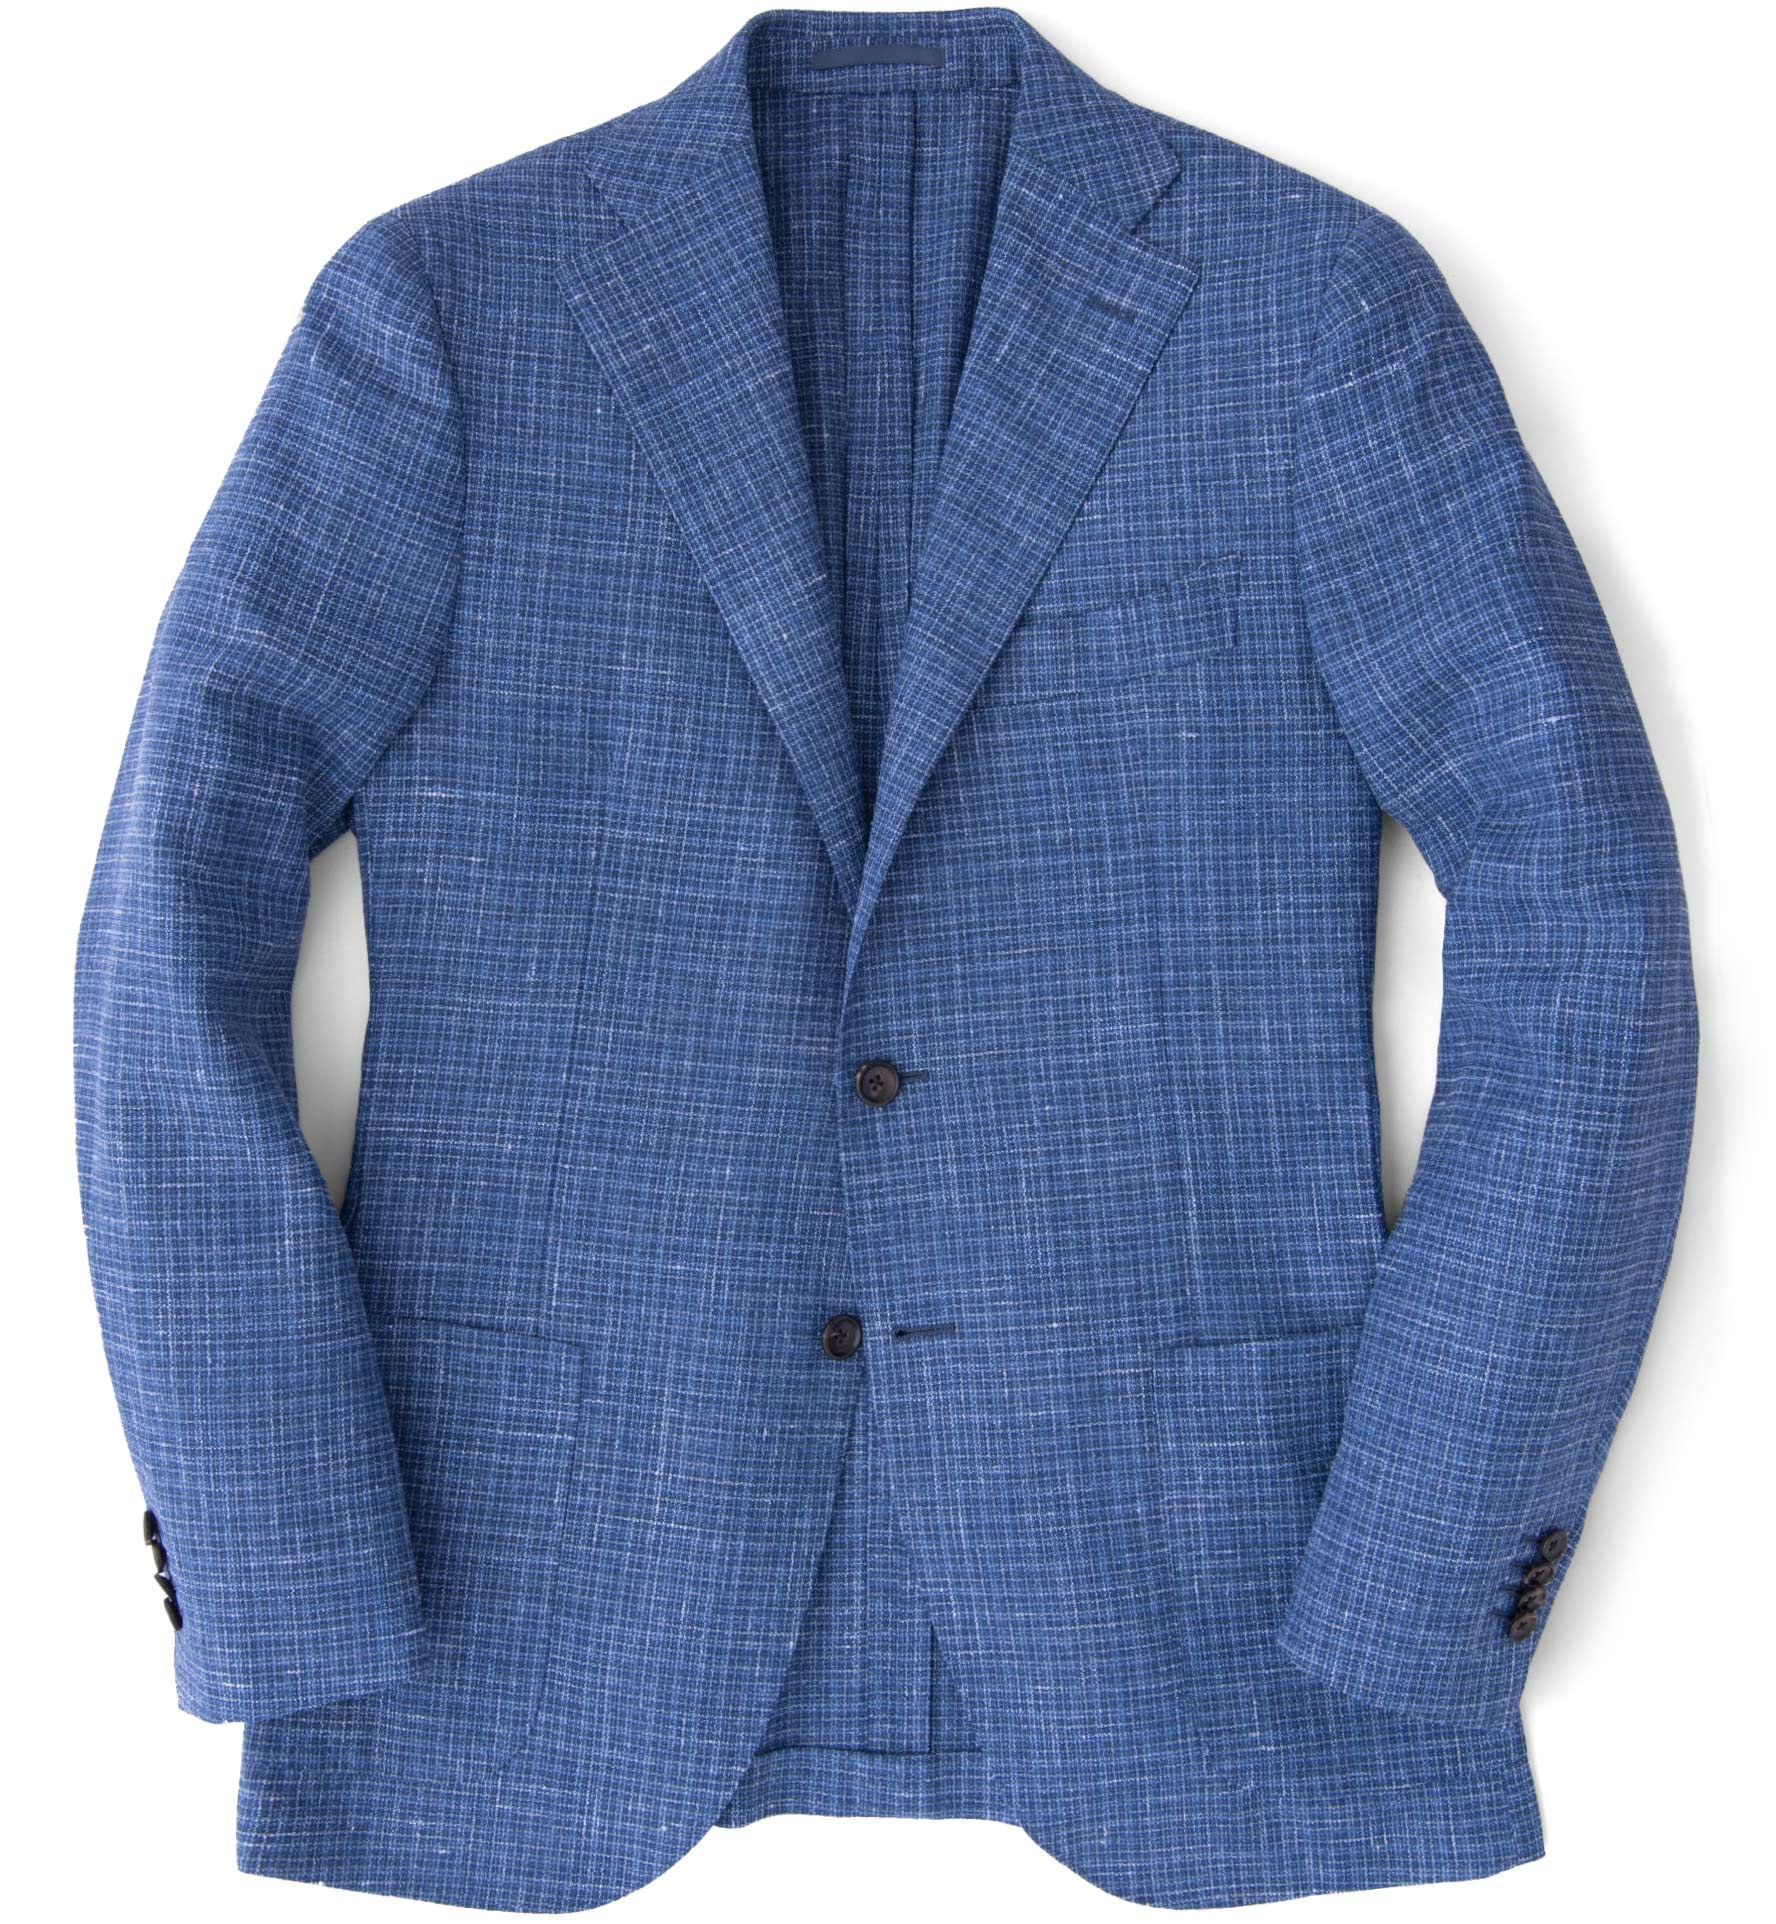 Zoom Image of Hudson Ocean Blue Textured Micro Check Jacket